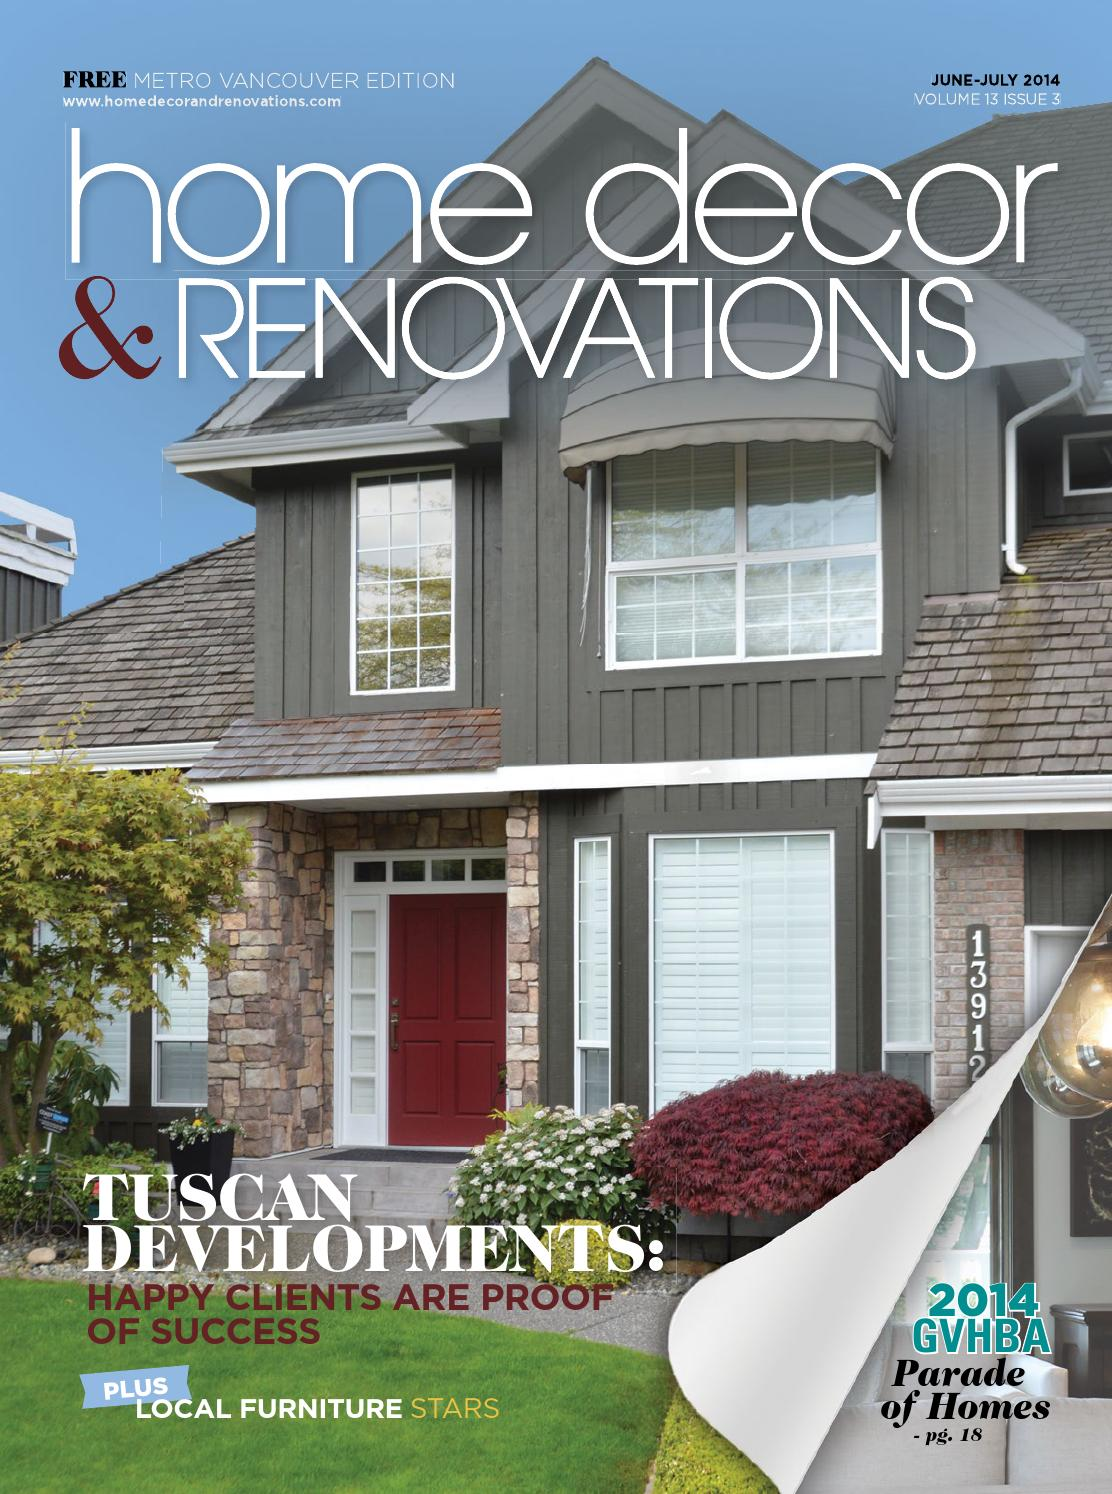 vancouver home decor amp renovations   jun jul 2014 by